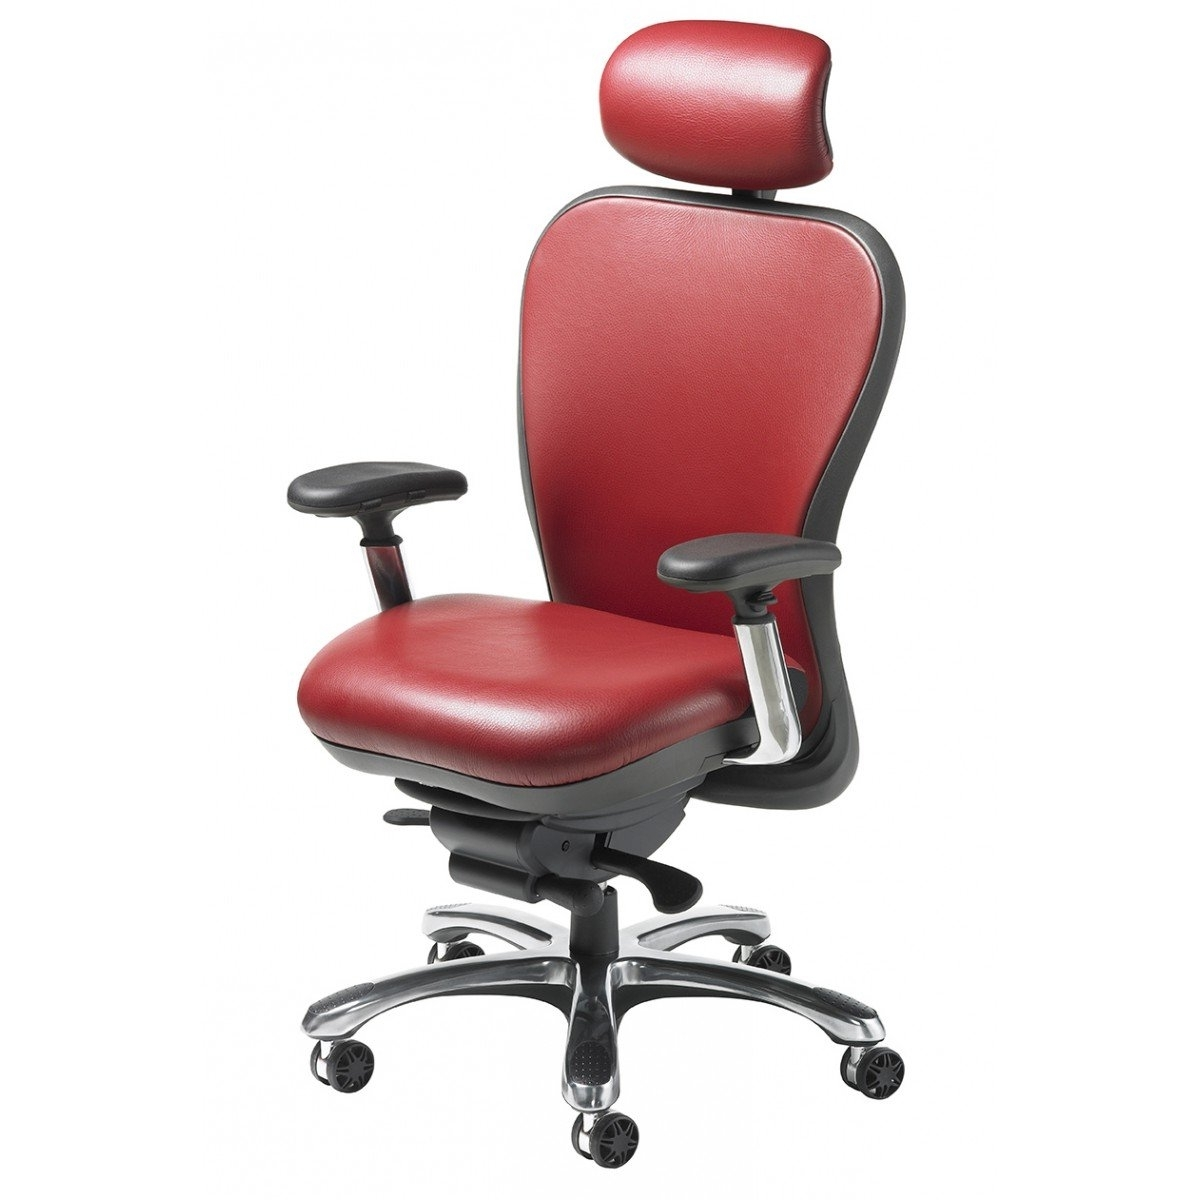 2018 Petite Executive Office Chairs For Cxo Executive Leather Office Chair (View 1 of 20)